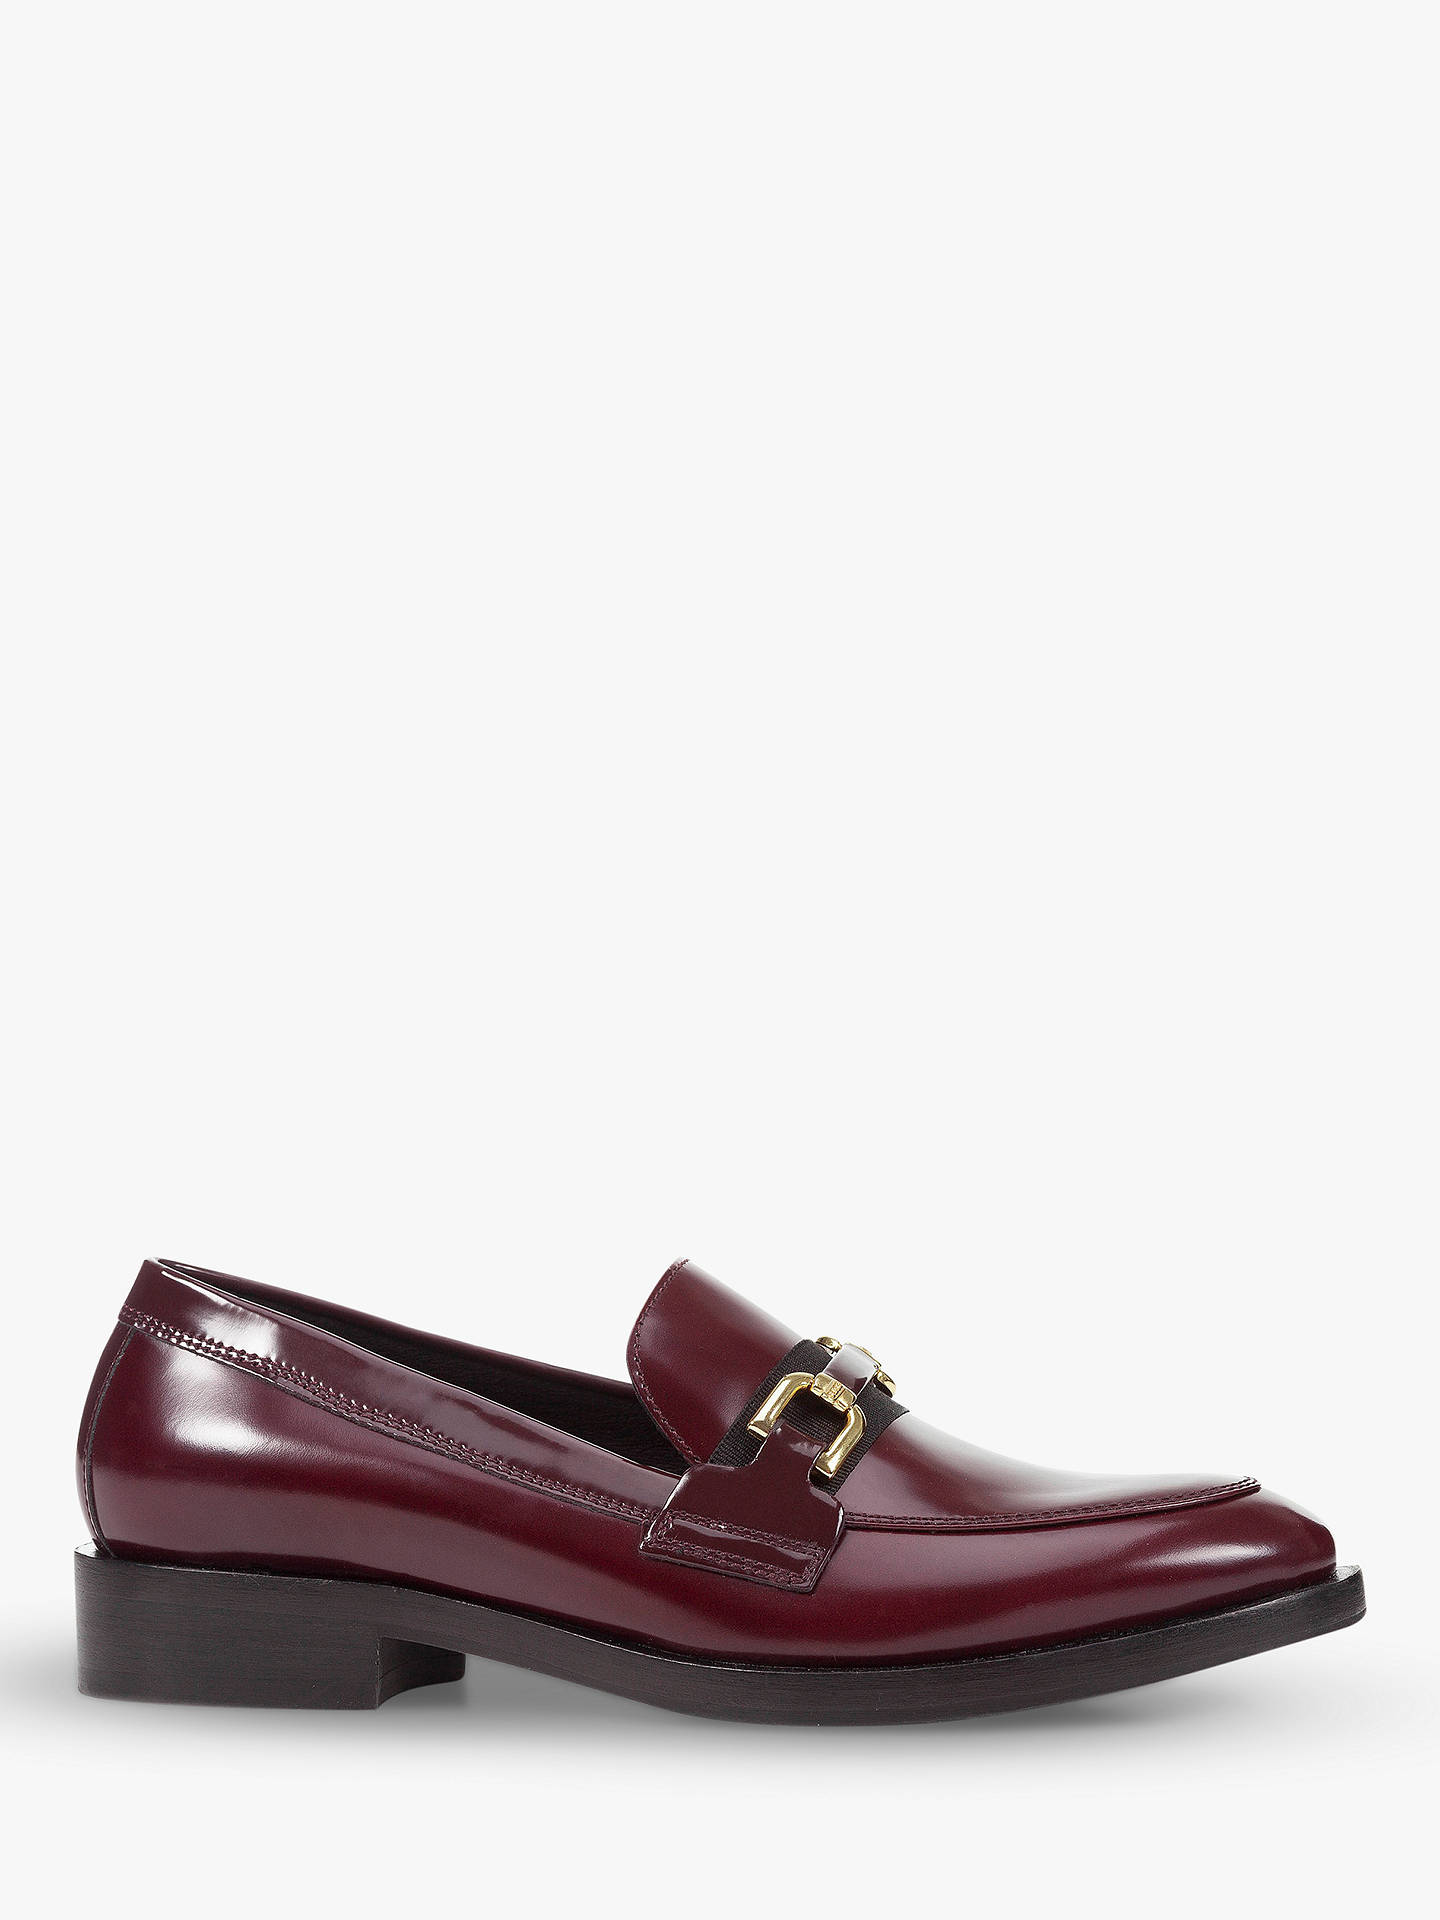 Derecho Pasado Cielo  Geox Women's Donna Loafers, Red Leather at John Lewis & Partners